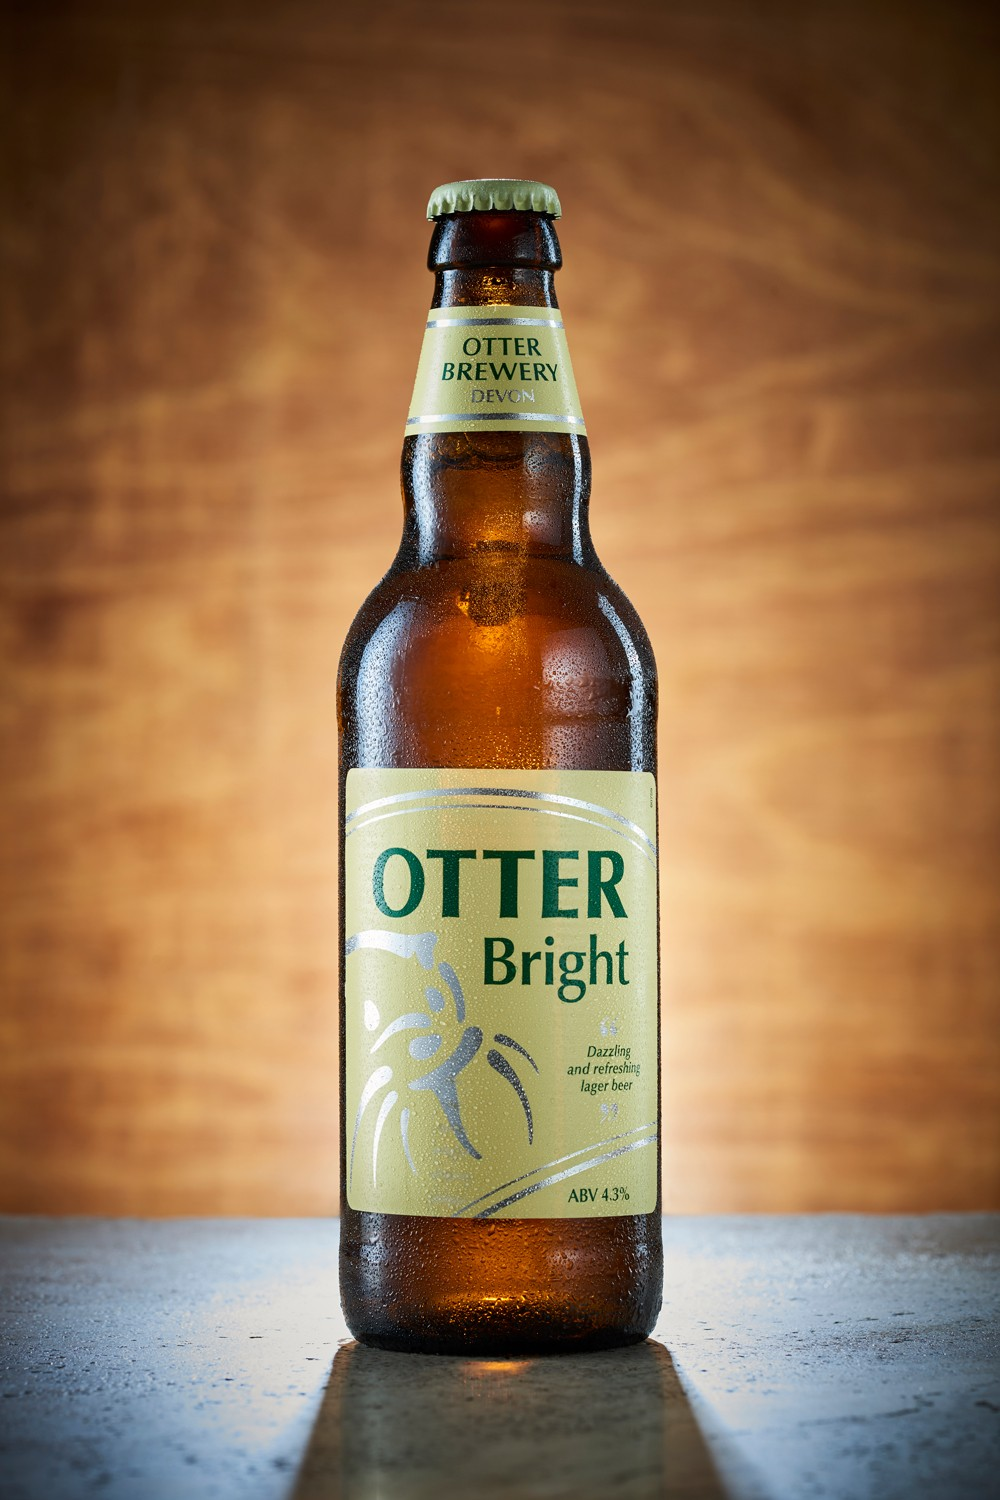 Otter Bright bottled beer